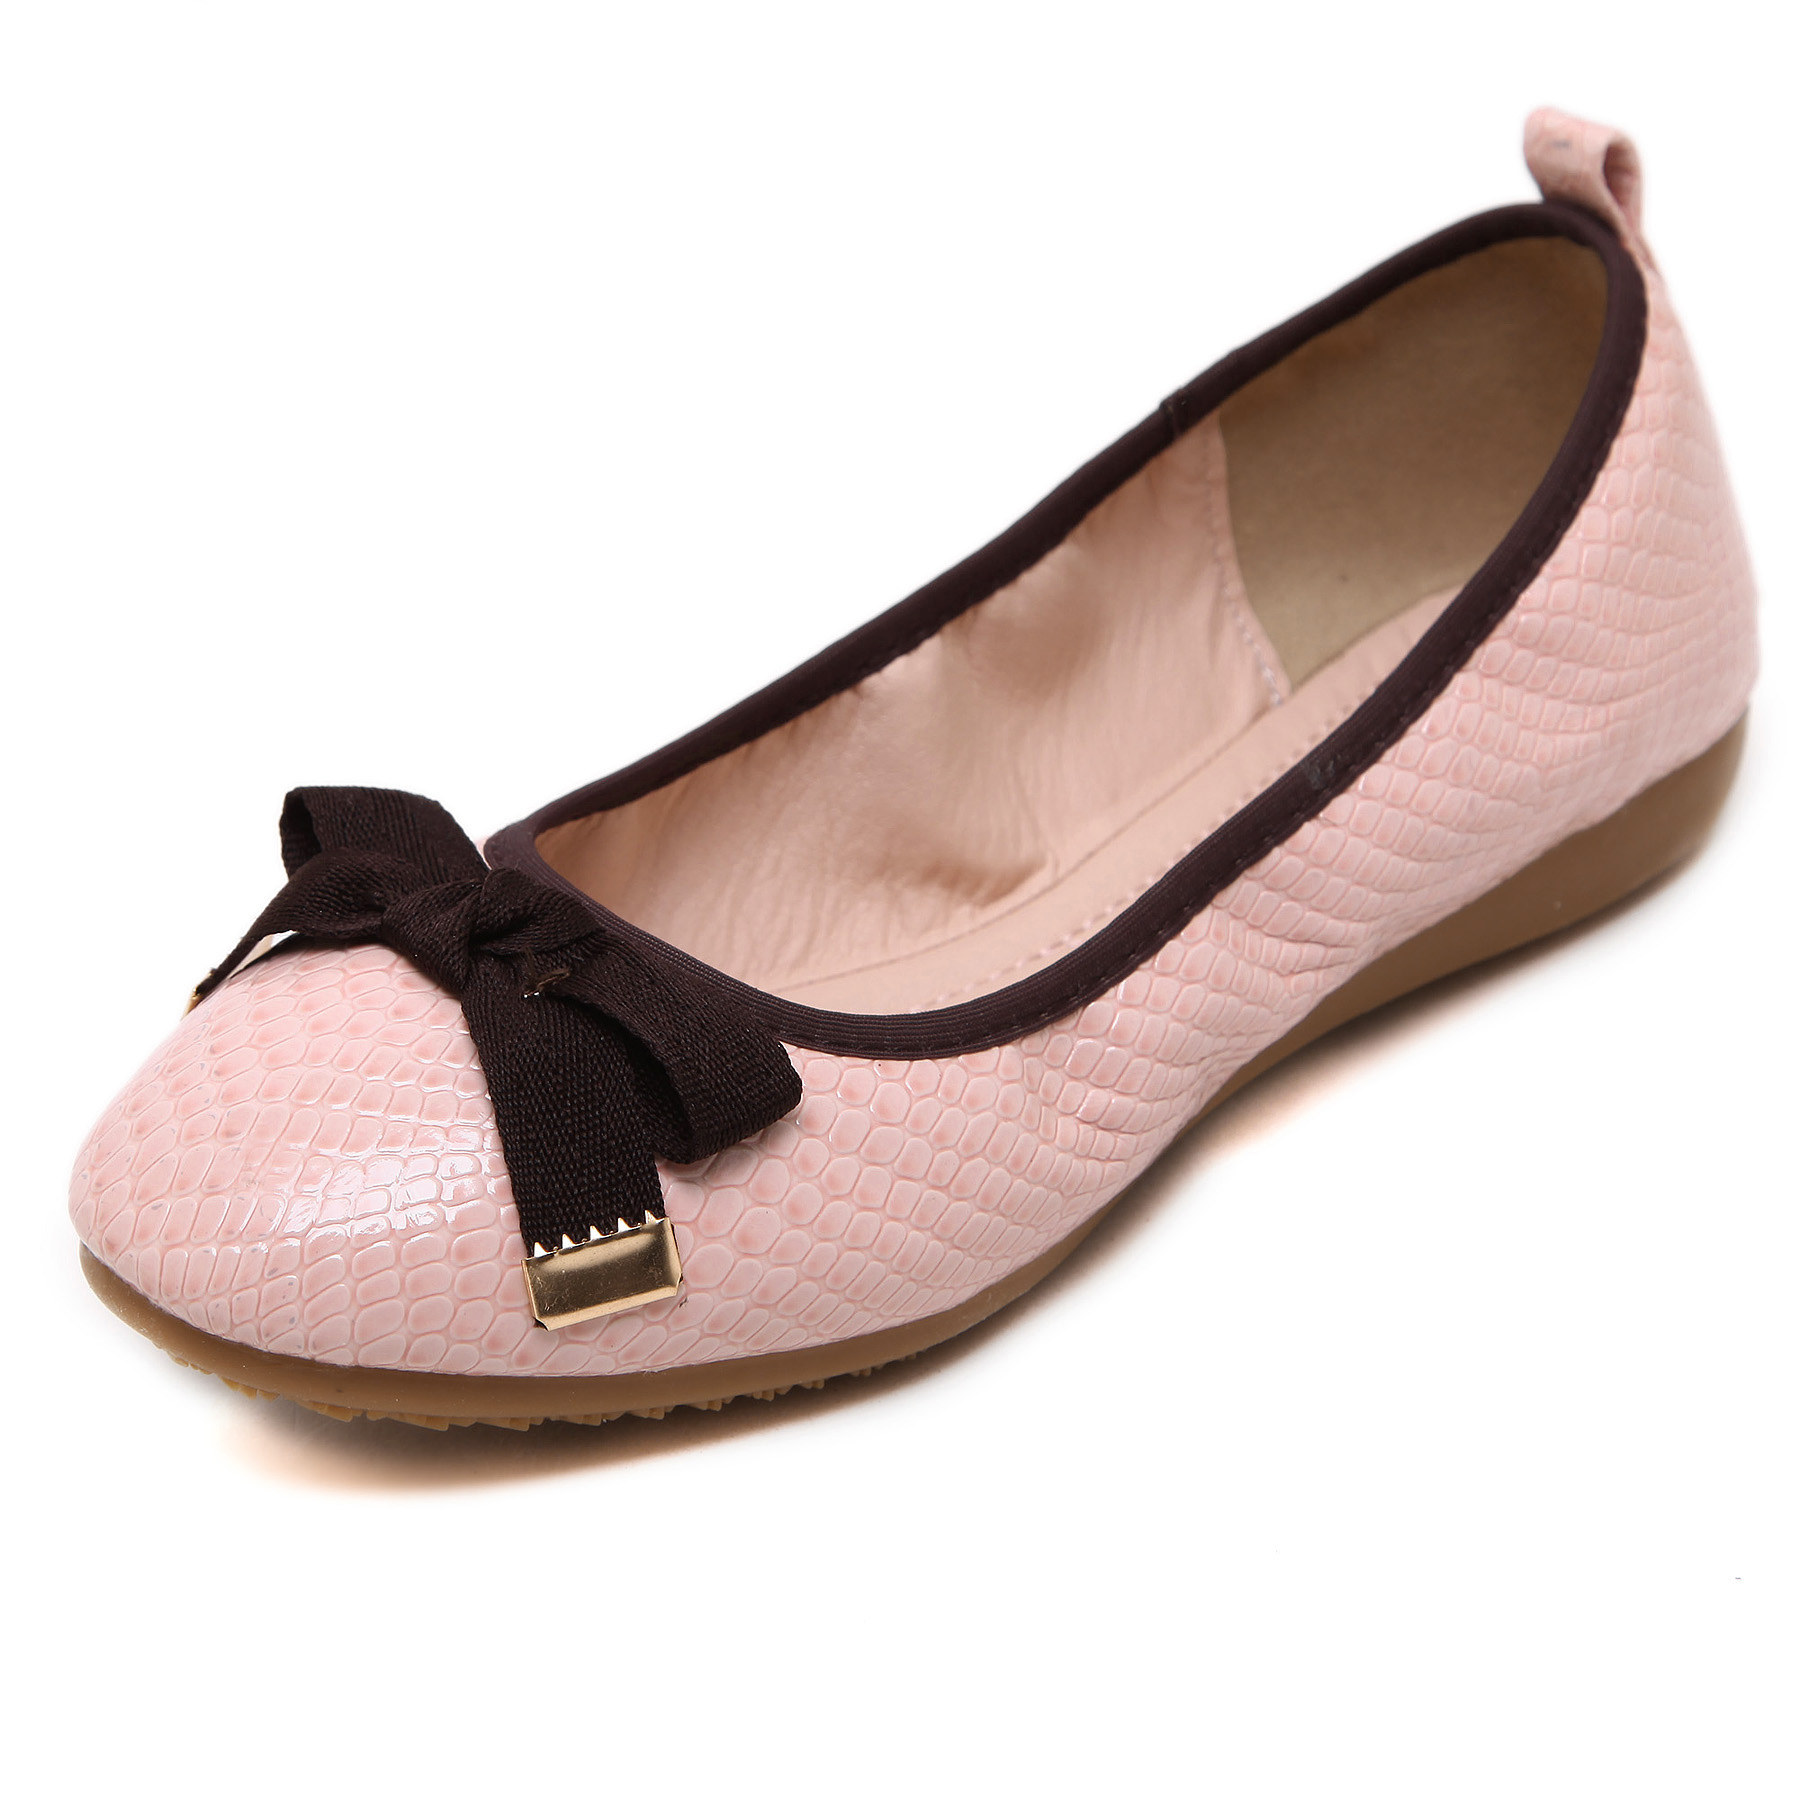 Brand New Fashion Casual Loafers Sweet Bowtie Mesh Women Ballet Flats Summer Style Shoes Woman Snakeskin Pattern Plus Size 35-40 new 2017 spring summer women shoes pointed toe high quality brand fashion womens flats ladies plus size 41 sweet flock t179